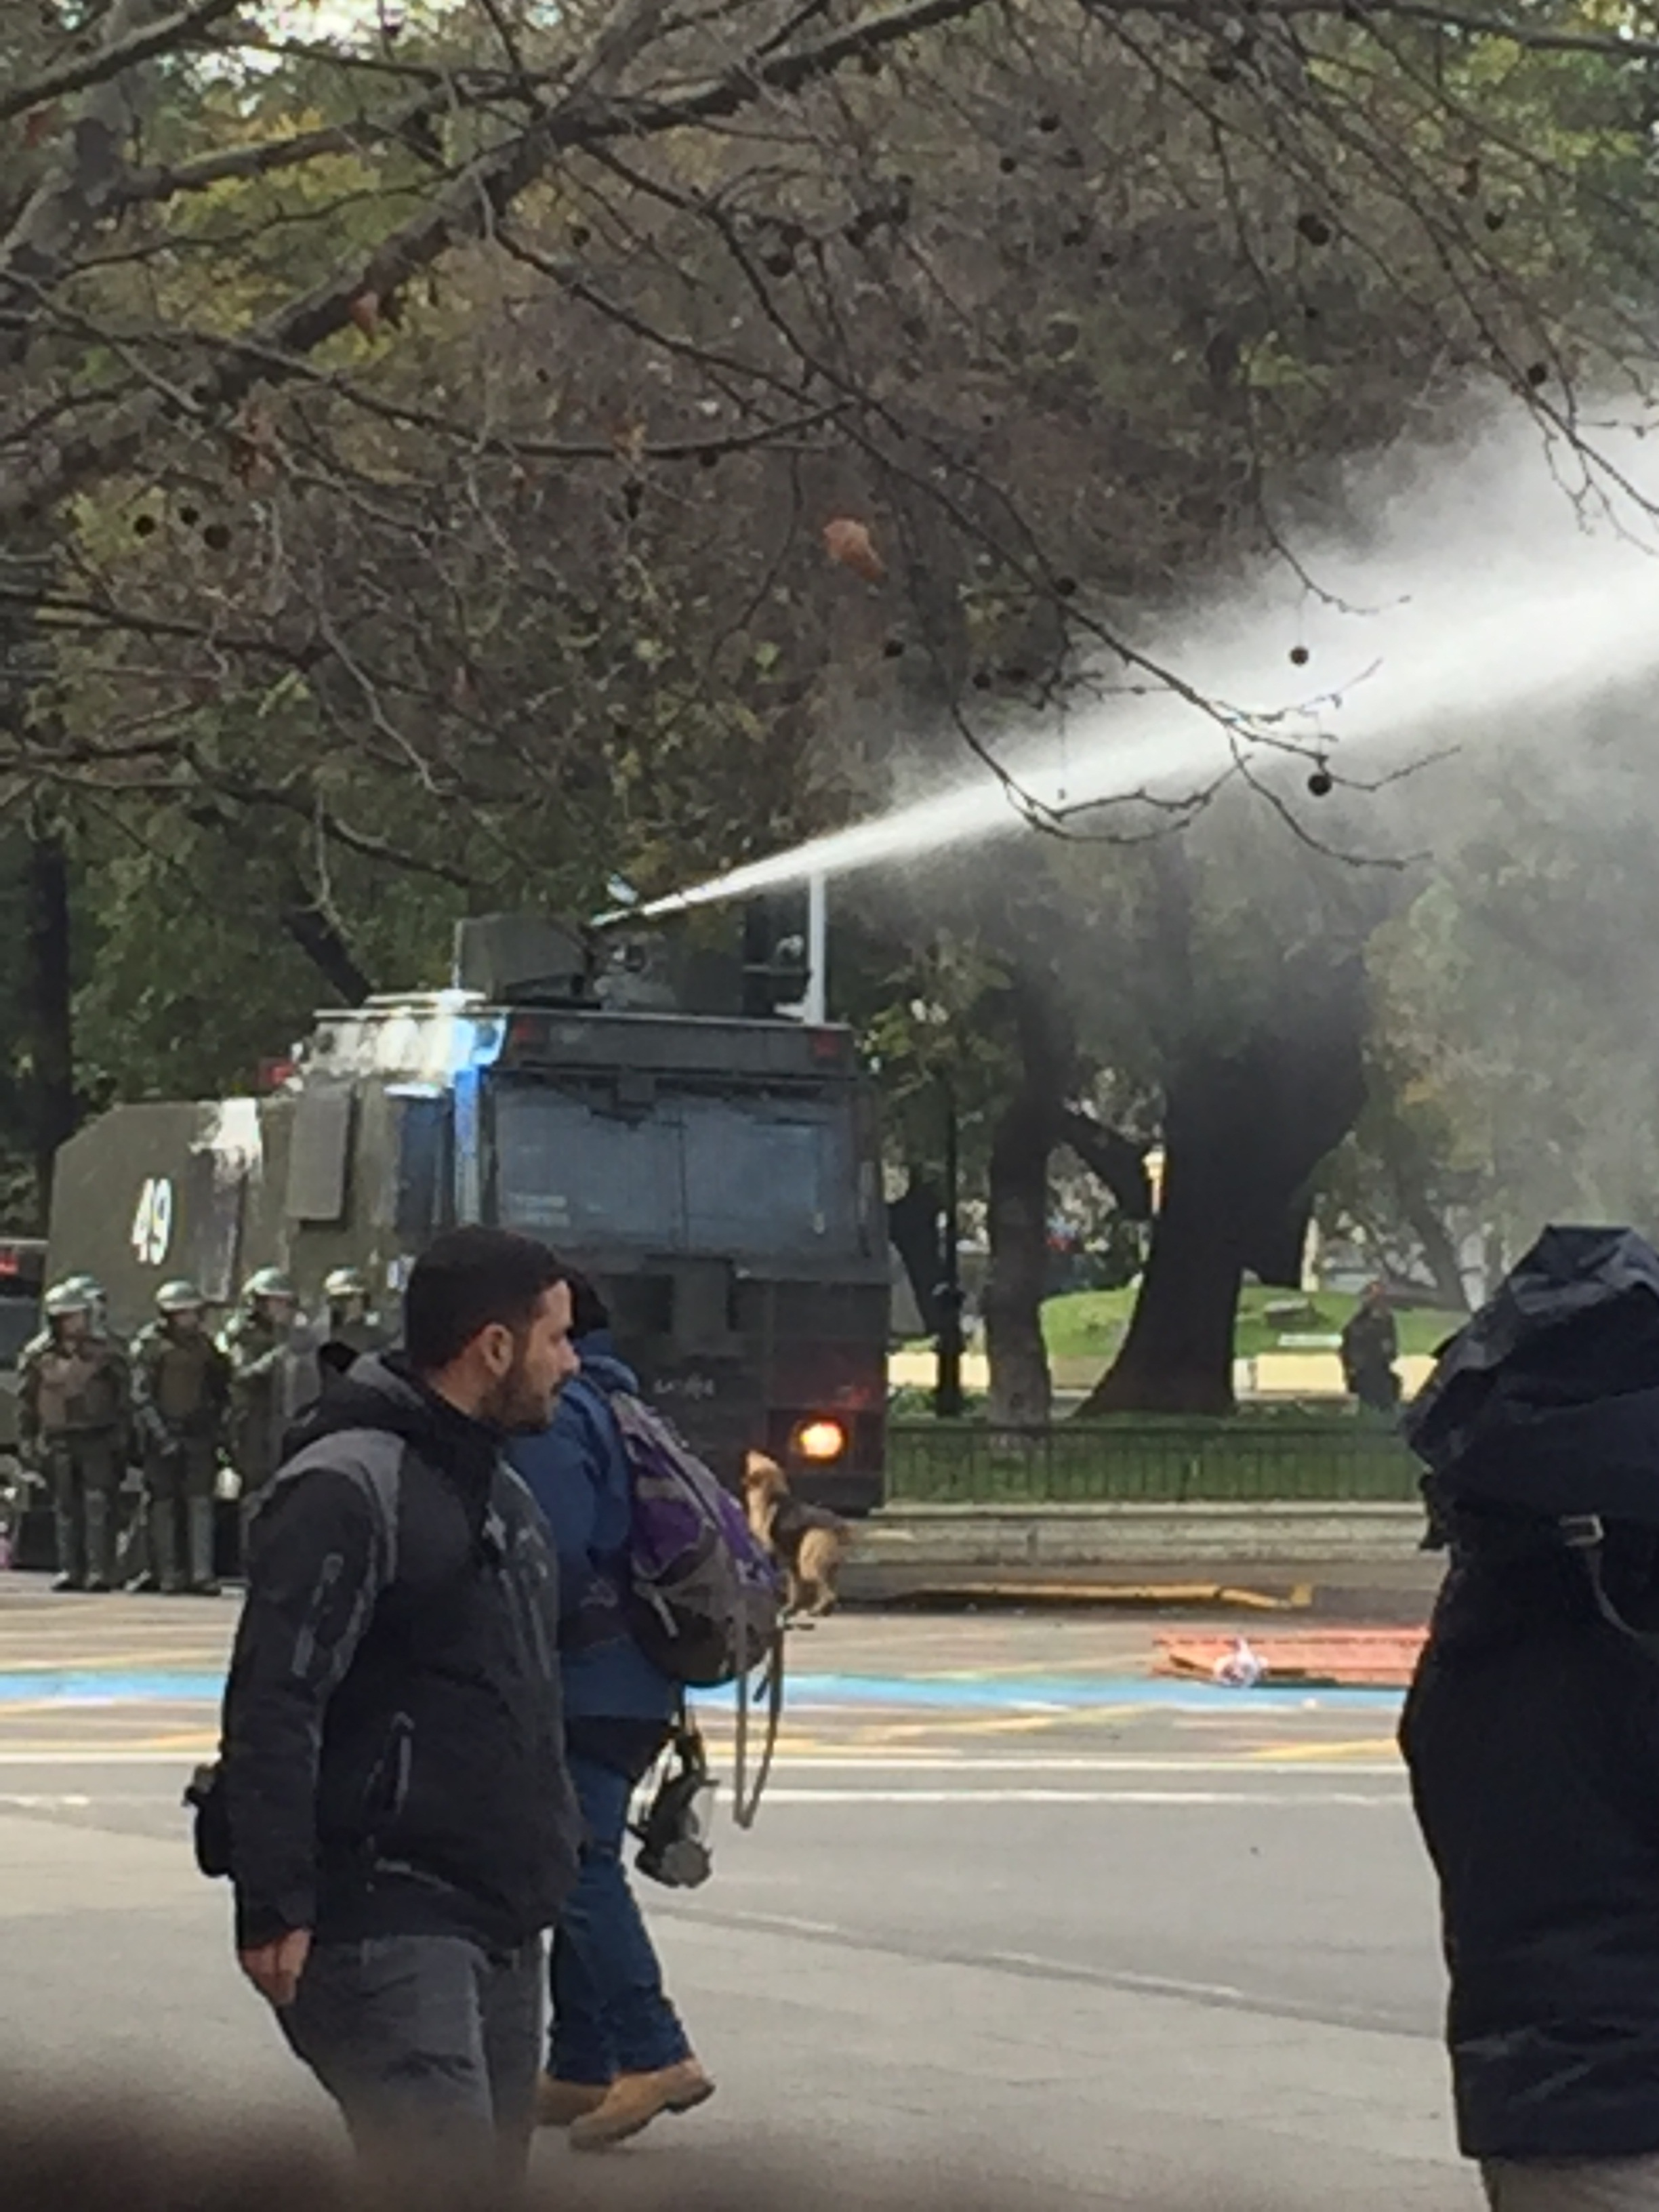 Student Tution fee  protest rally turned nasty as the authorities have to resort to water cannon